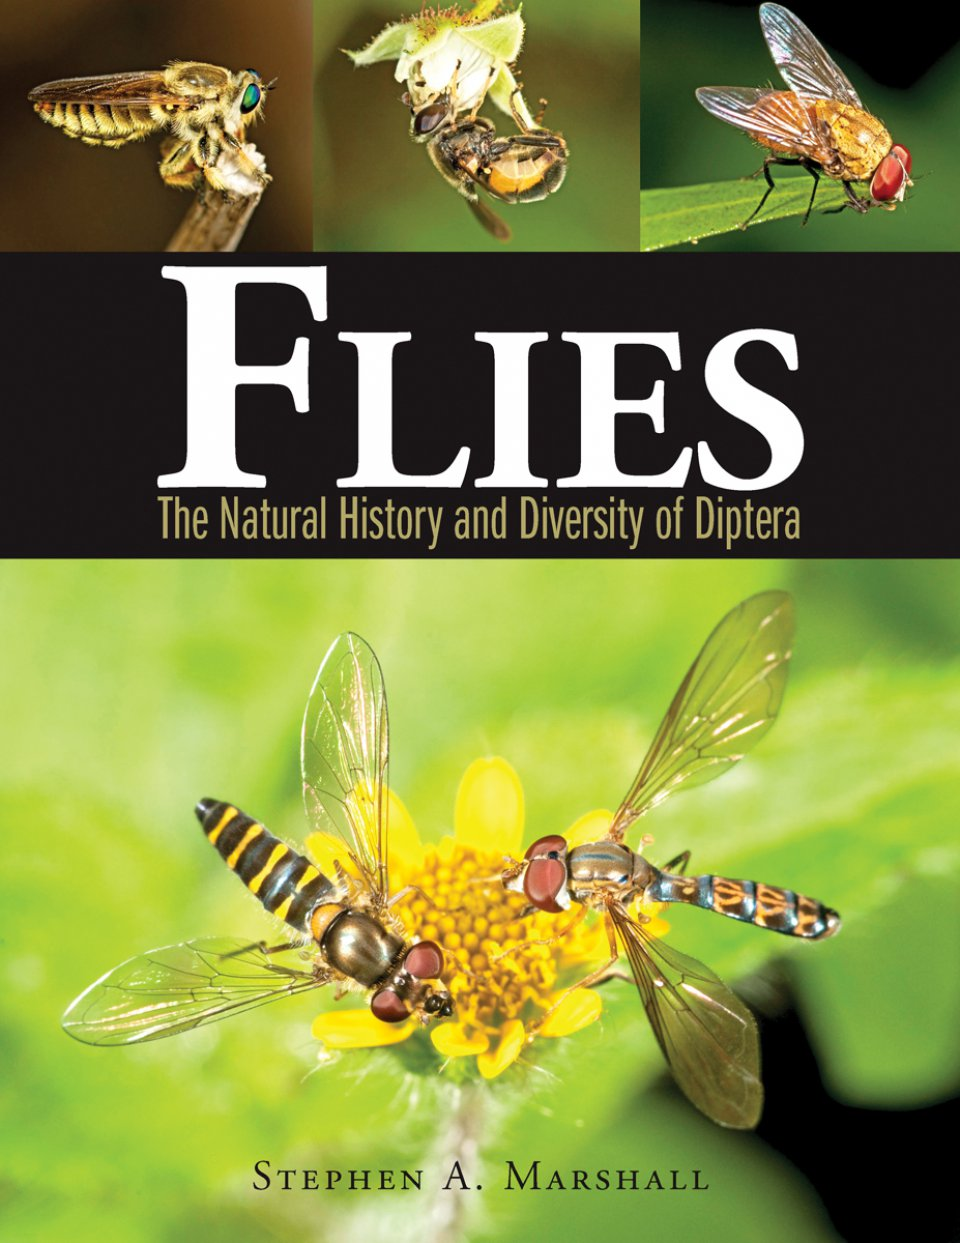 MARSHALL, S.A. - Flies: The Natural History and Diversity of Diptera